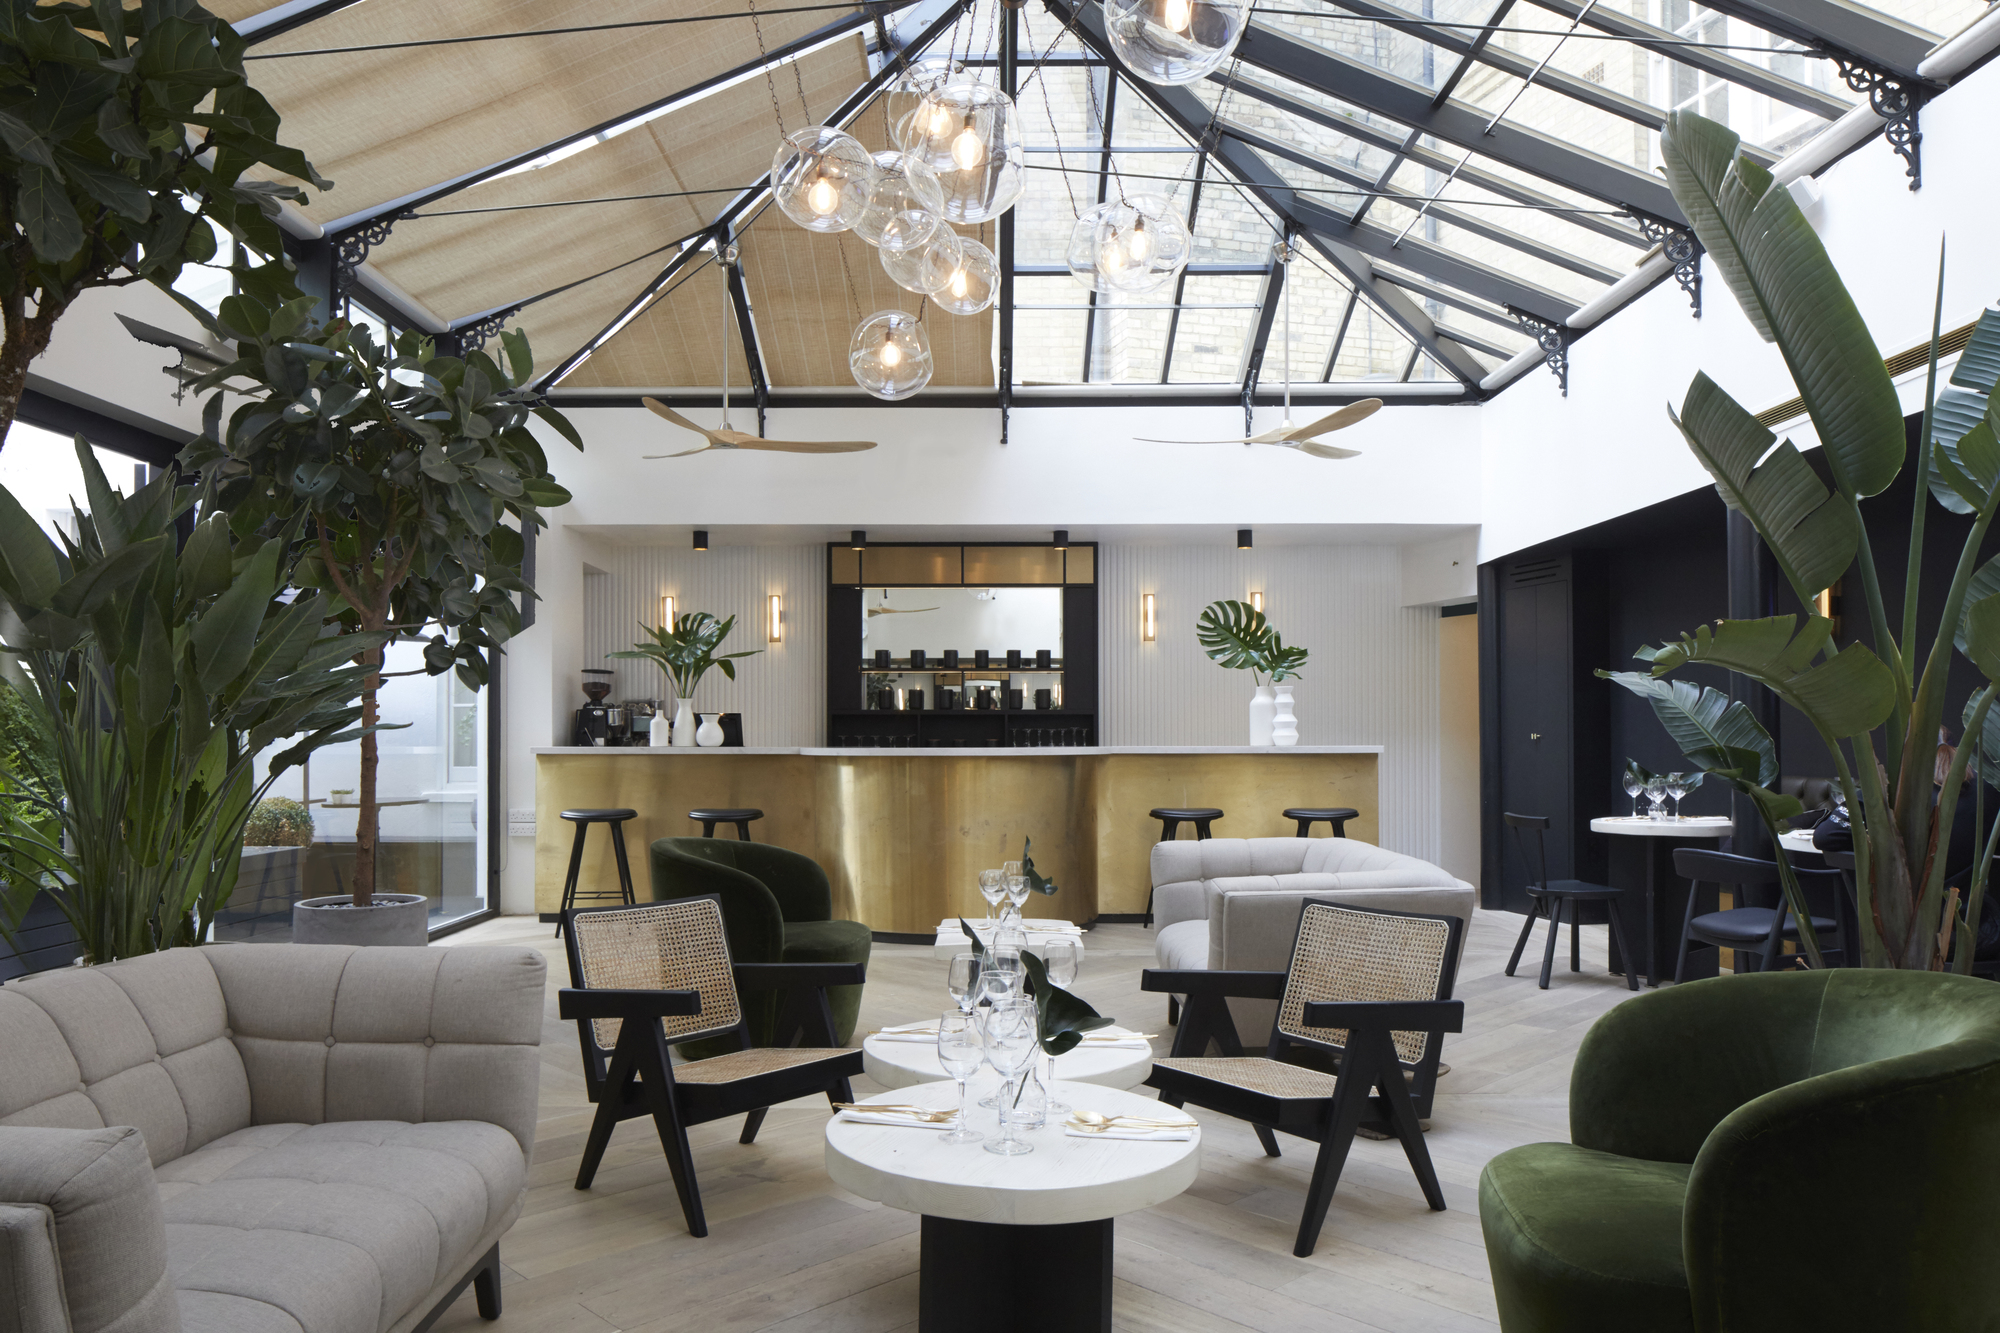 Mychelsea boutique hotel design haus liberty archdaily for Design boutique hotels schweiz